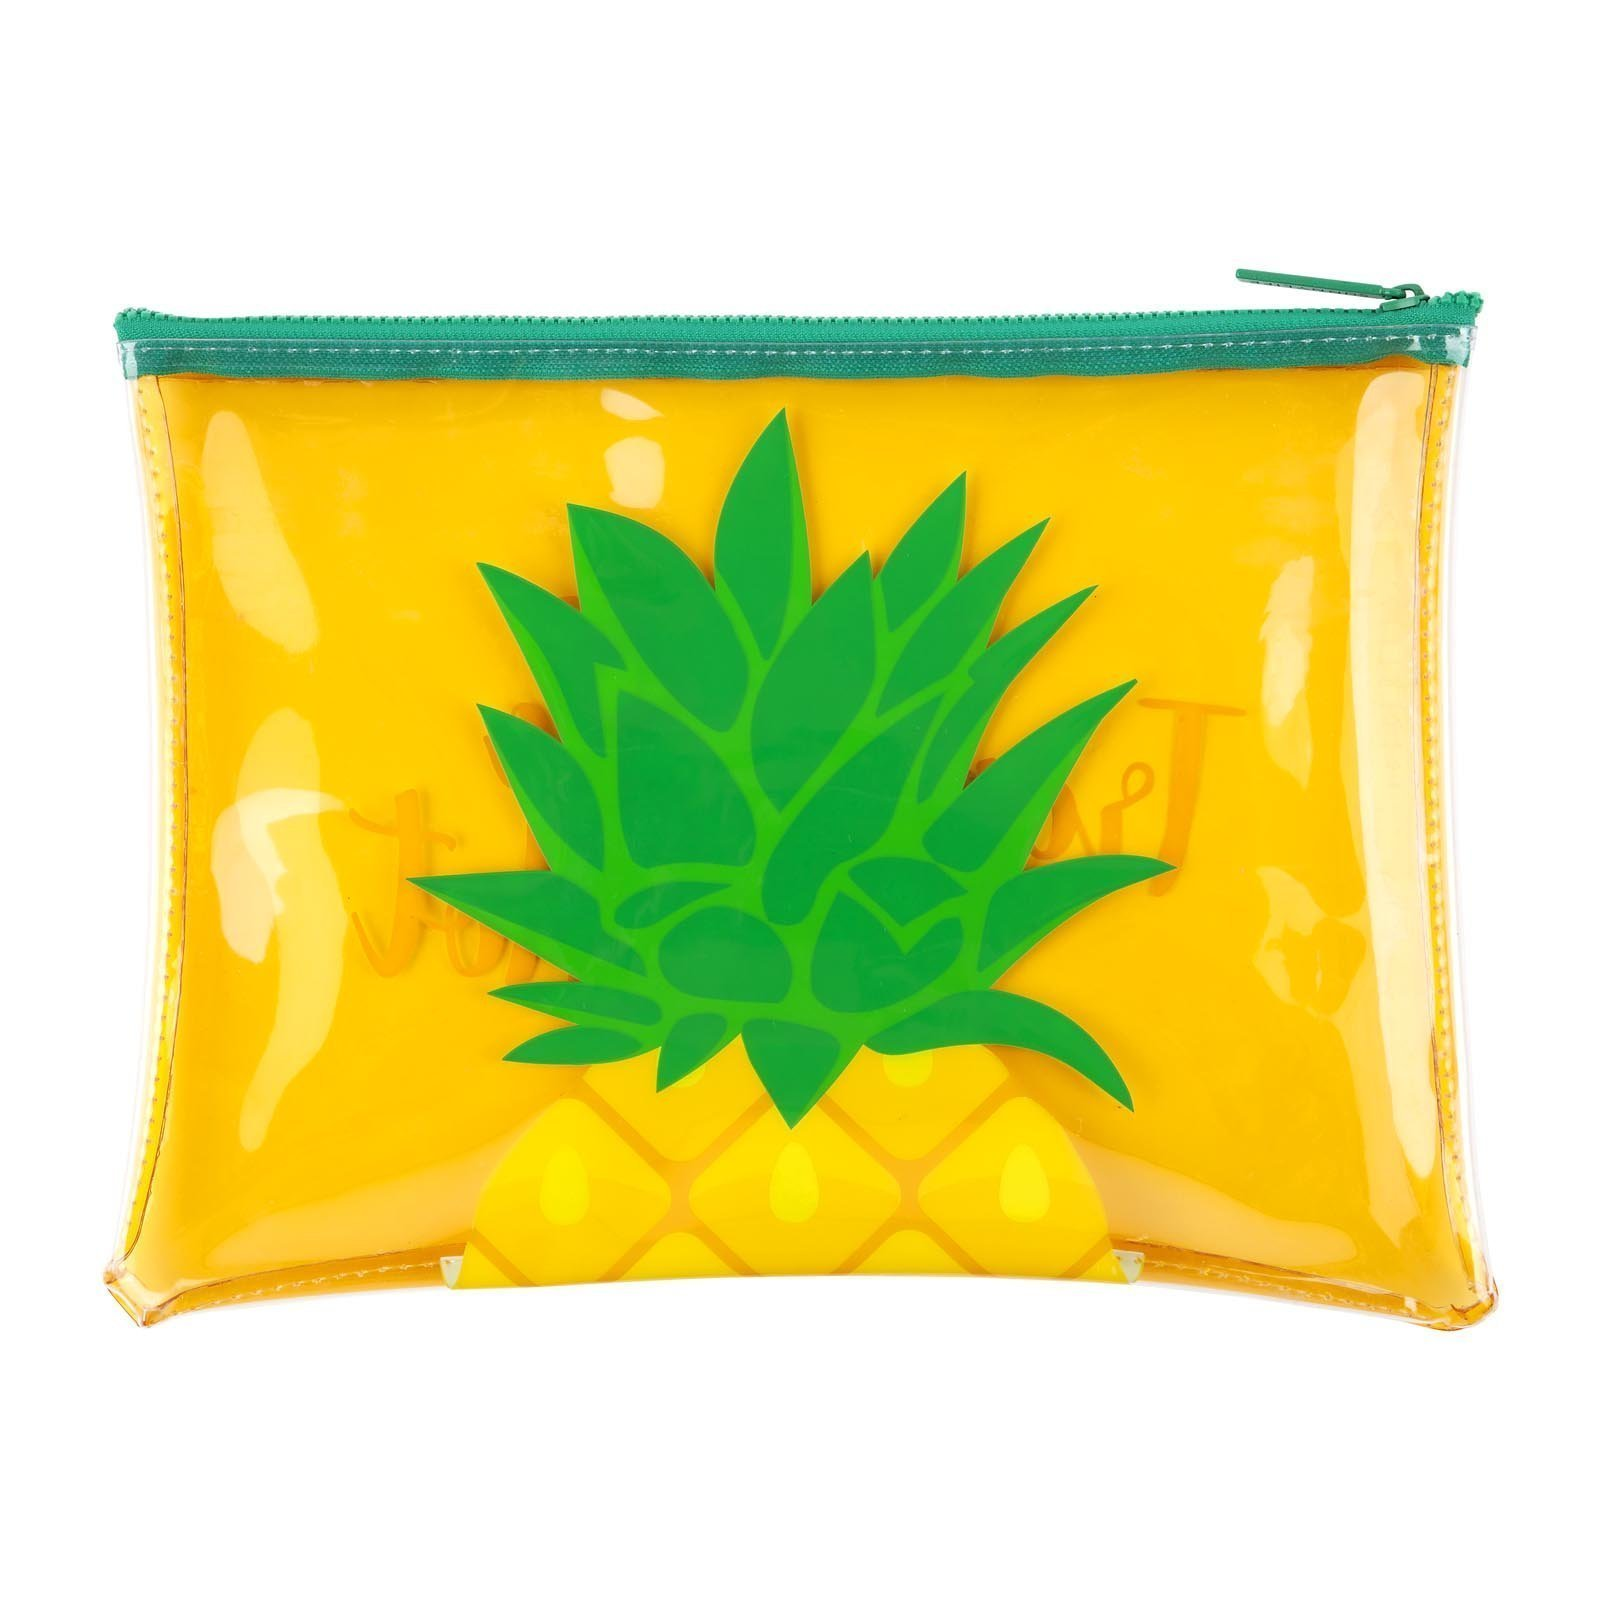 https://www.sunnylife.com/collections/all-products/products/see-thru-pouch-pineapple-ss18